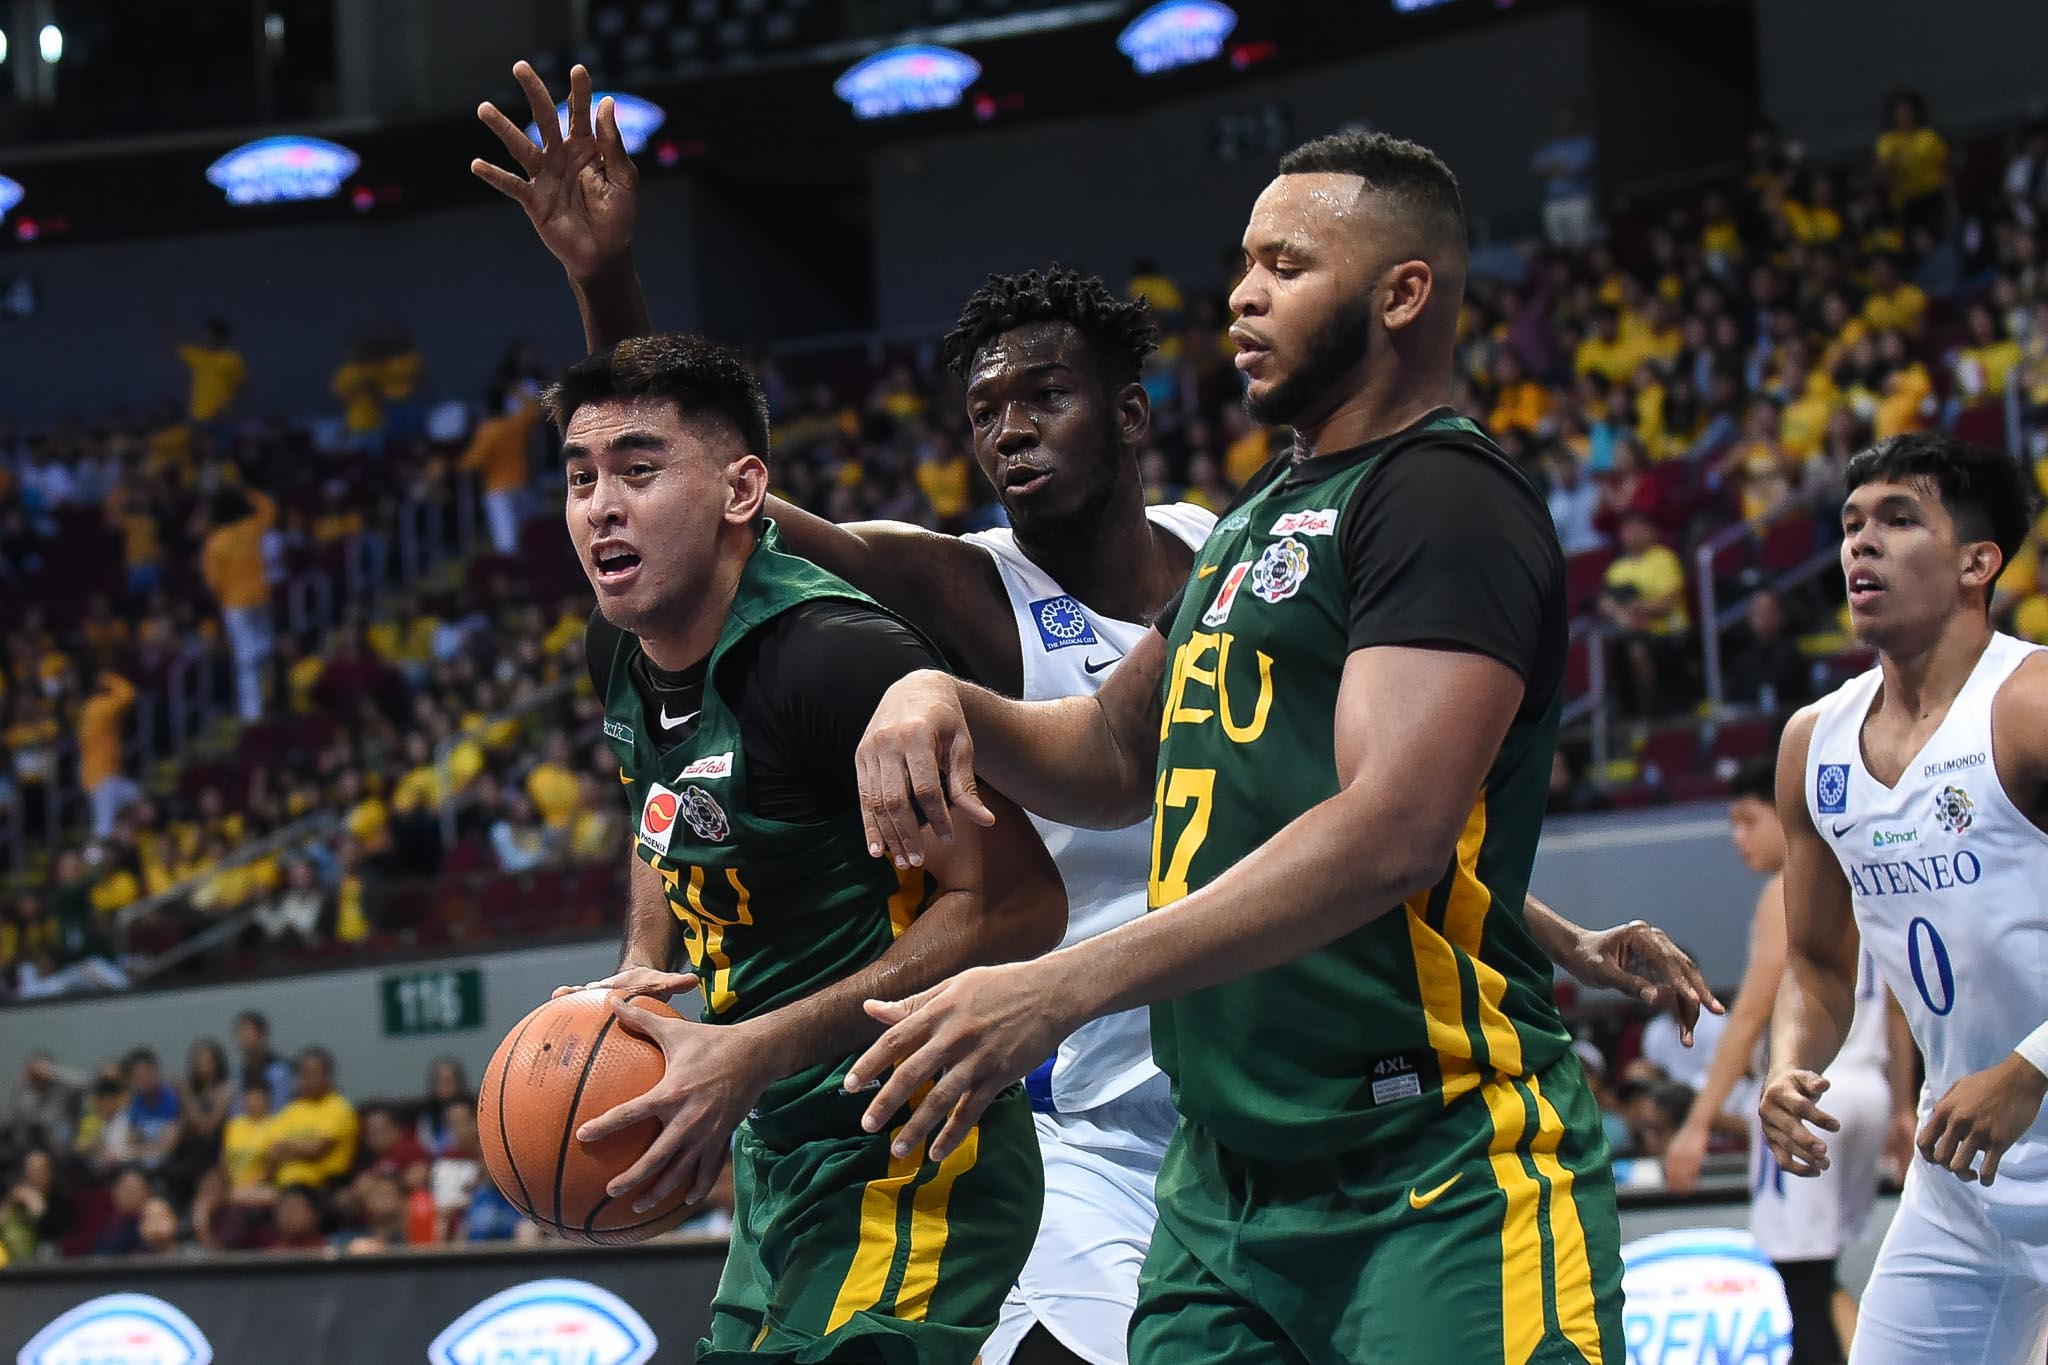 reputable site 886cd 18102 FEU stuns Ateneo in UAAP thriller